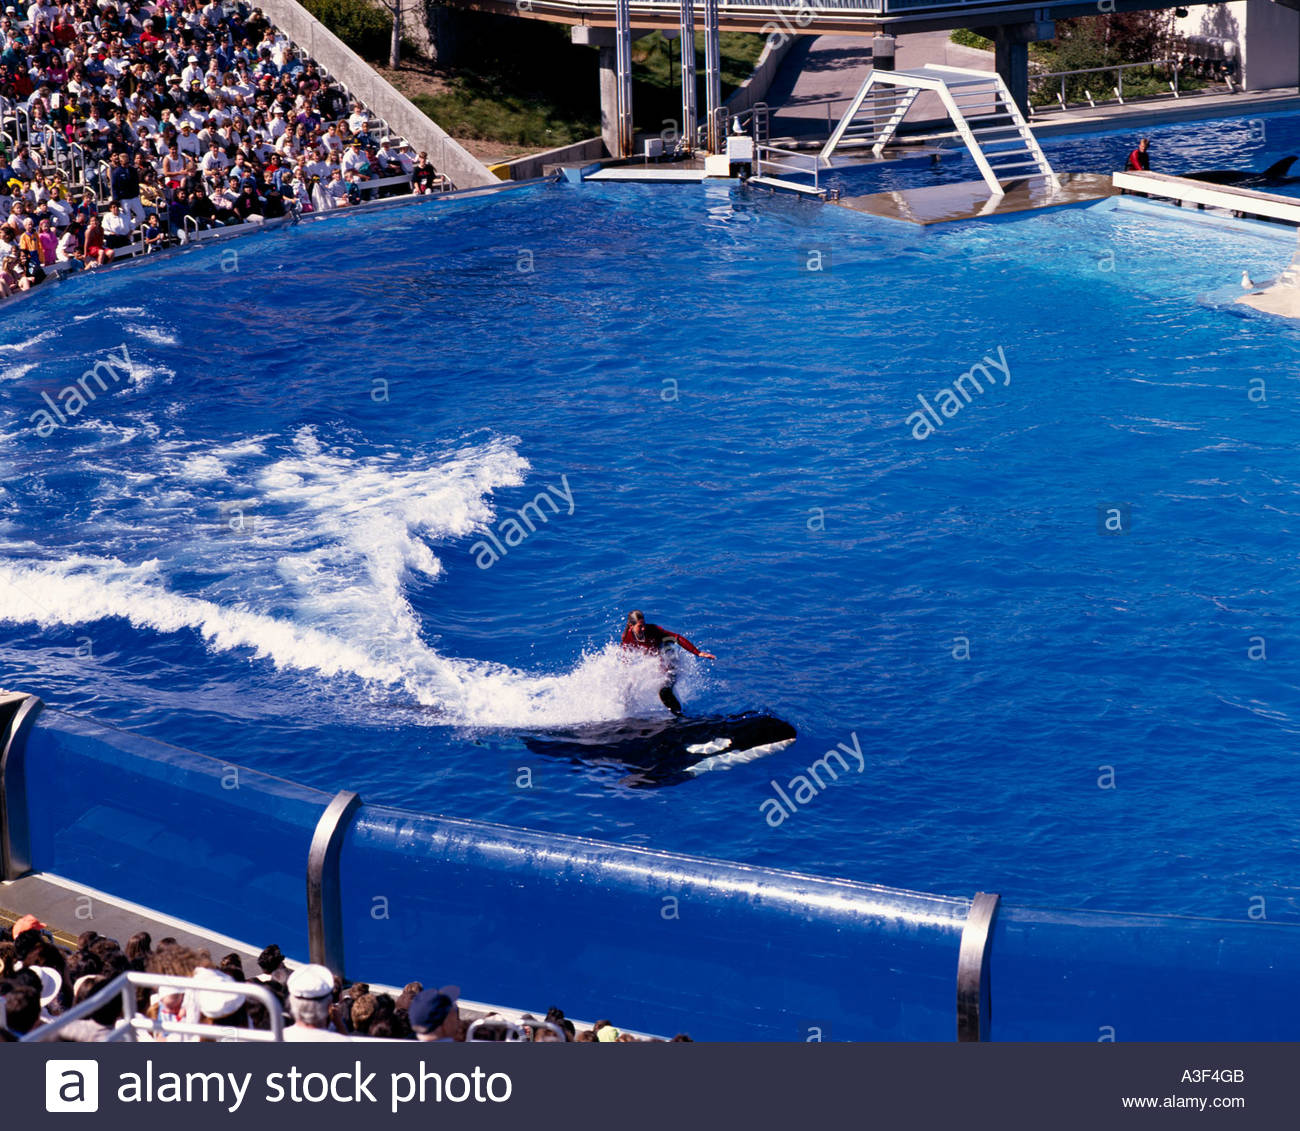 Sea World San Diego United States Killer Whale Swimming Pool Show Stock Photo Royalty Free